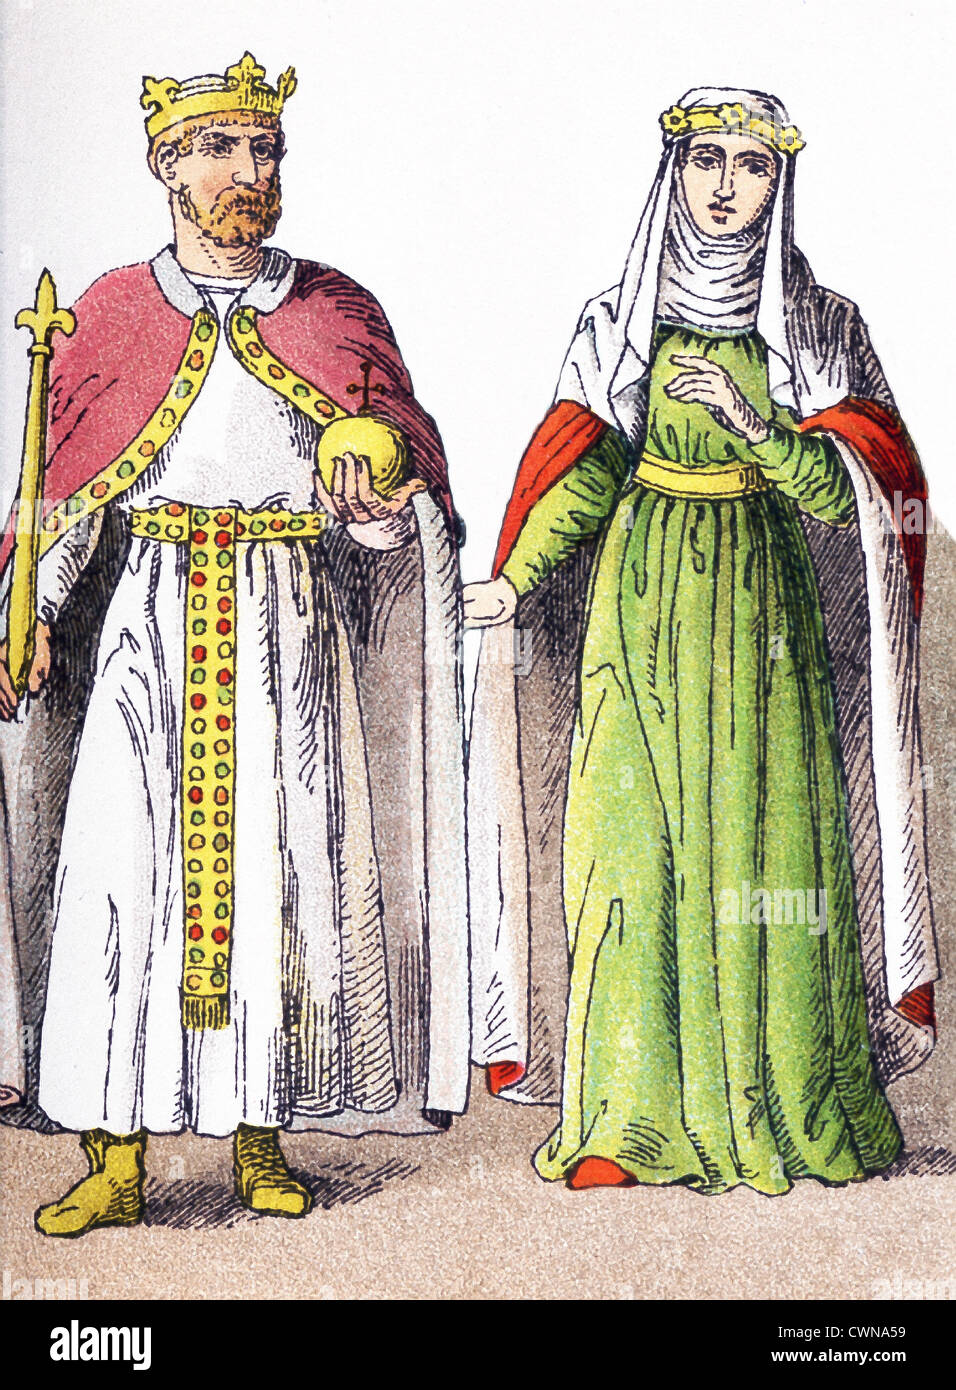 They represent the Emperor Frederick I (Barbarossa) (1190) and the consort of the prince Henry the Lion. - Stock Image